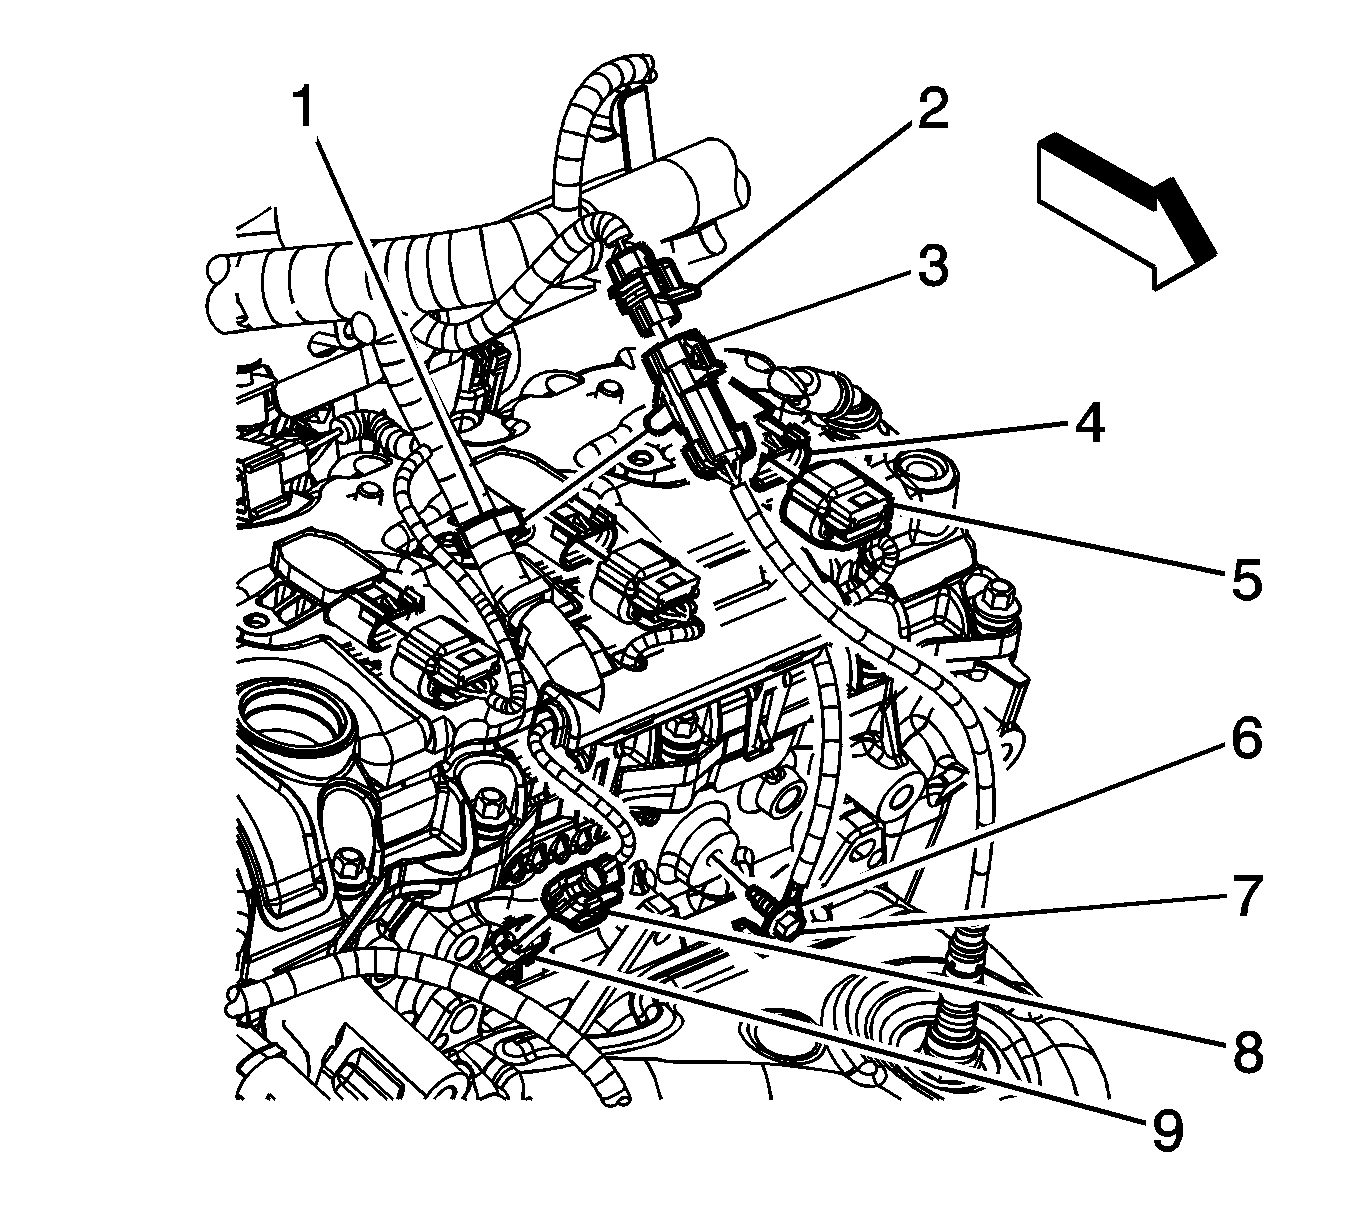 VG_3848] Wiring Harness For Gmc Acadia Free Diagram